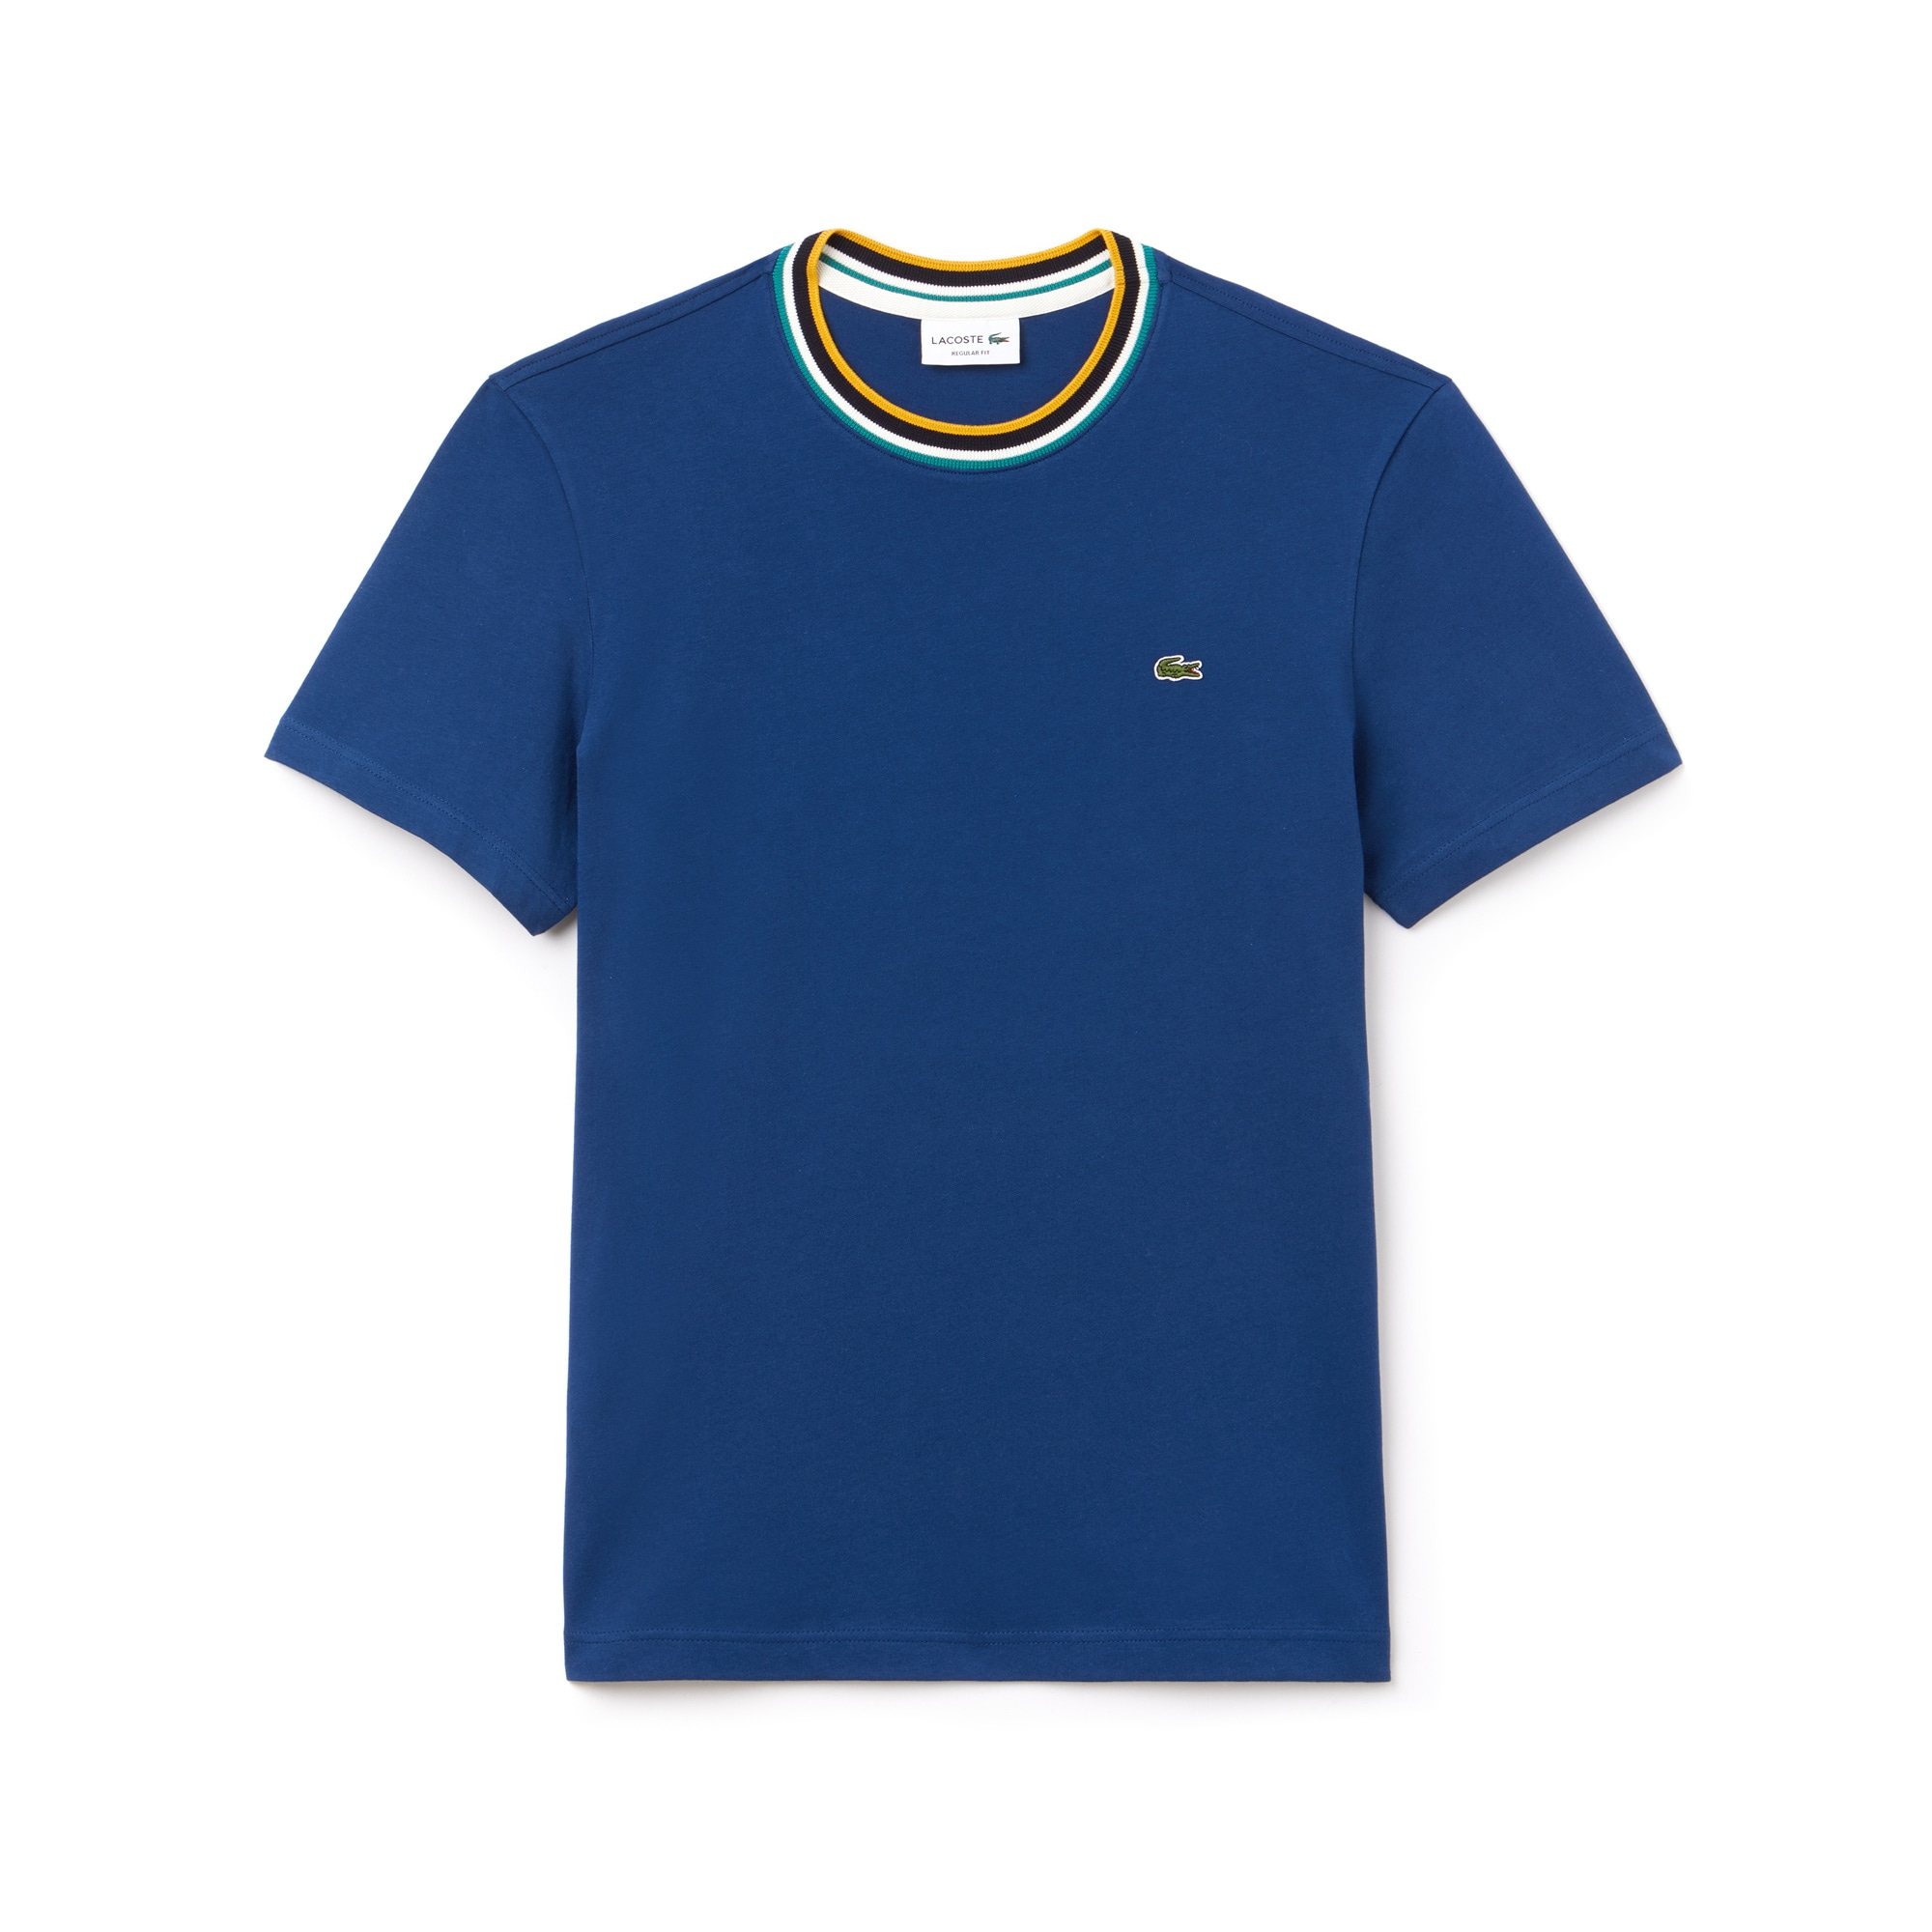 라코스테 Lacoste Mens Striped Ribbed Crew Neck Cotton Jersey T-shirt,navy blue